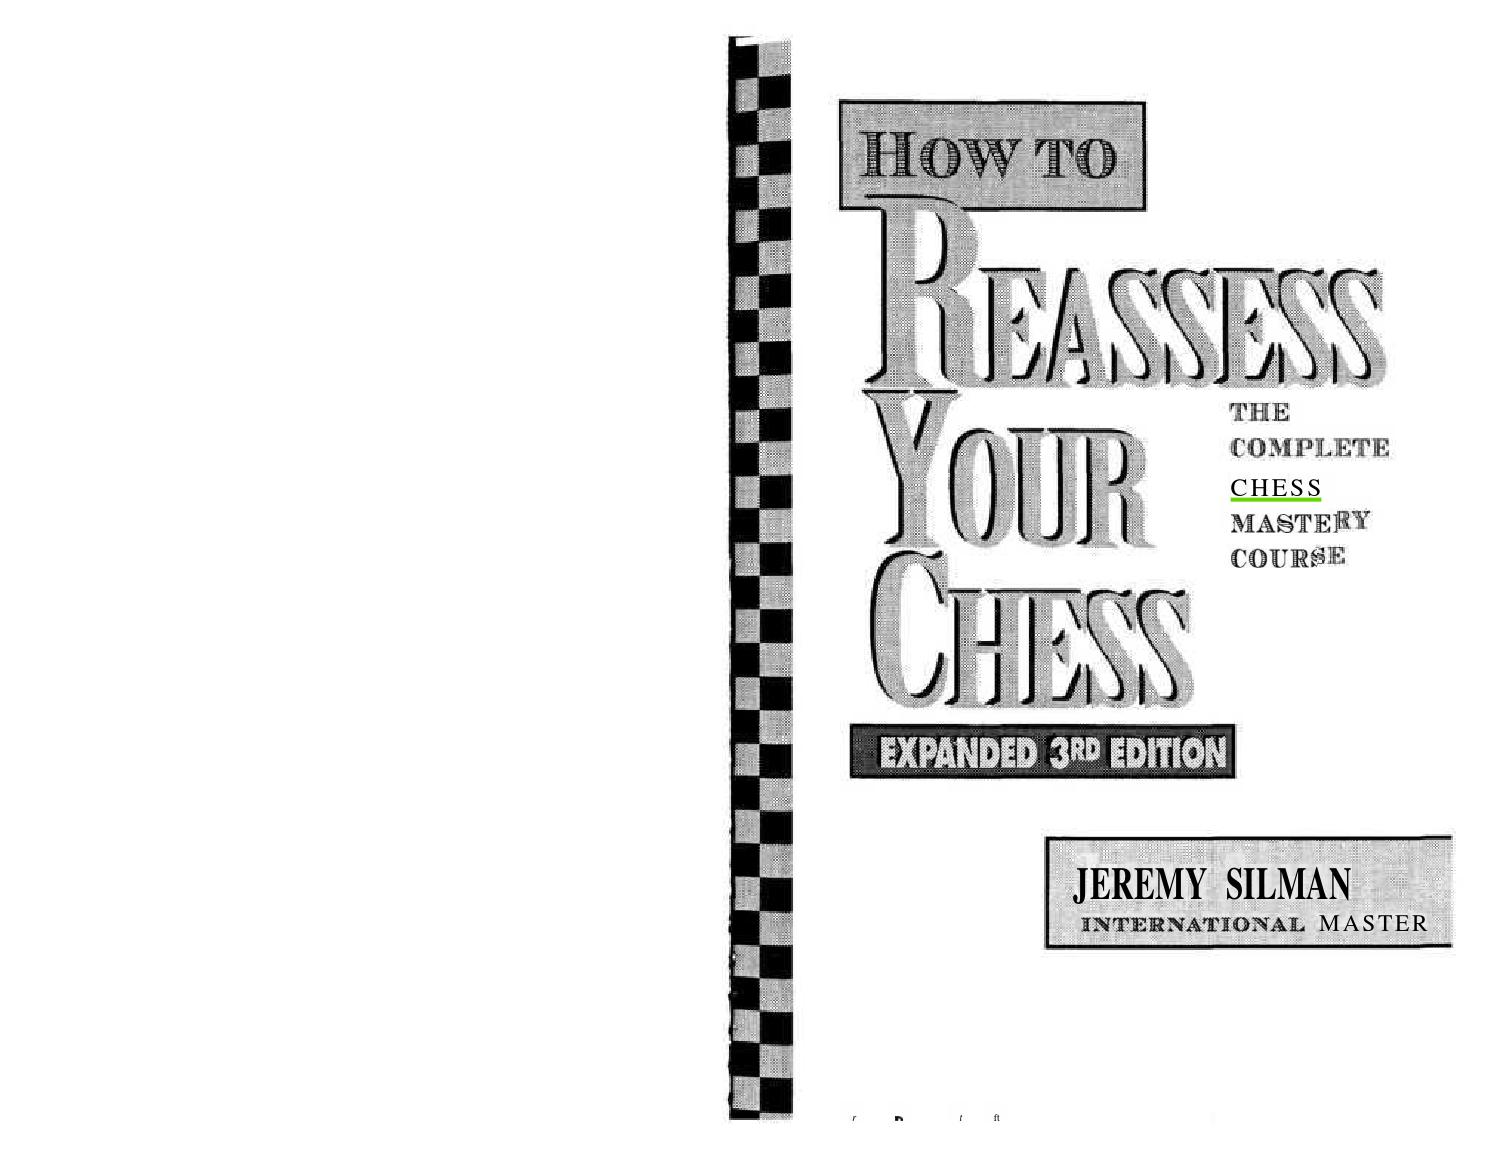 Jeremy silman how to reassess your chess(text formated) by